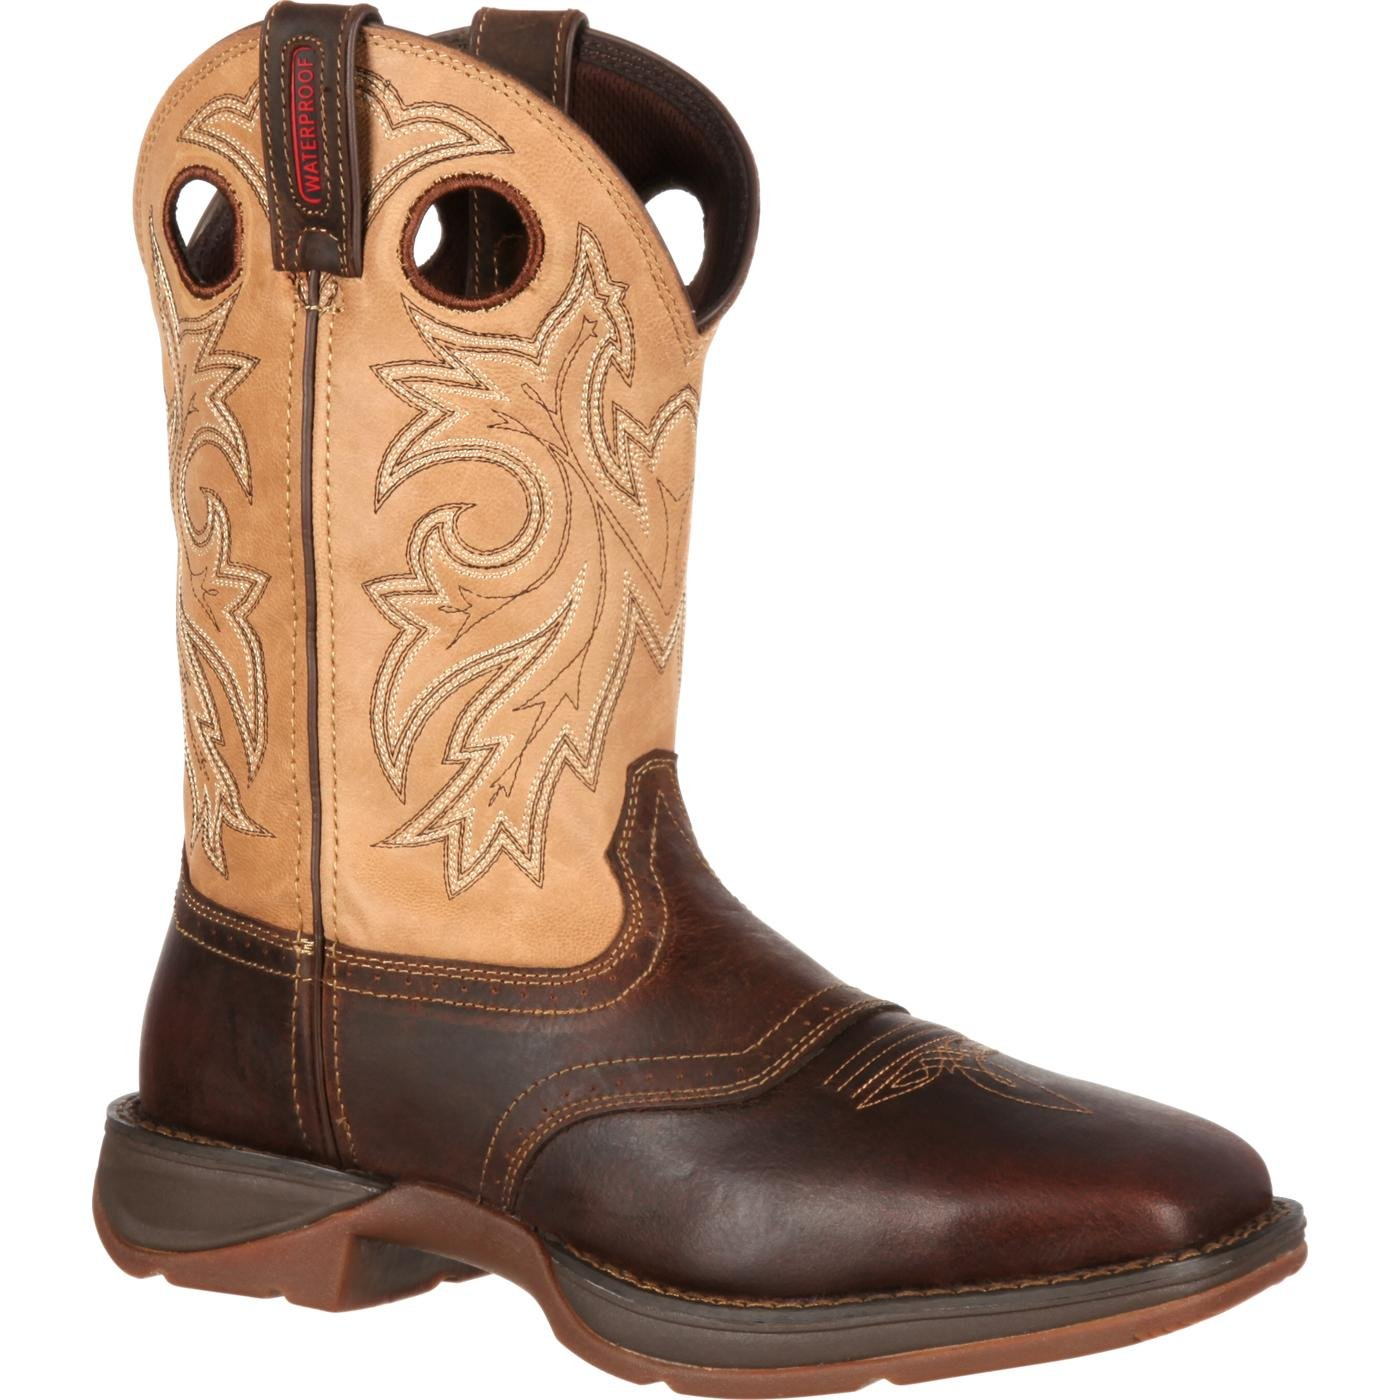 Durango Men's Rebel Tan Db4442, Brown, 8 W US